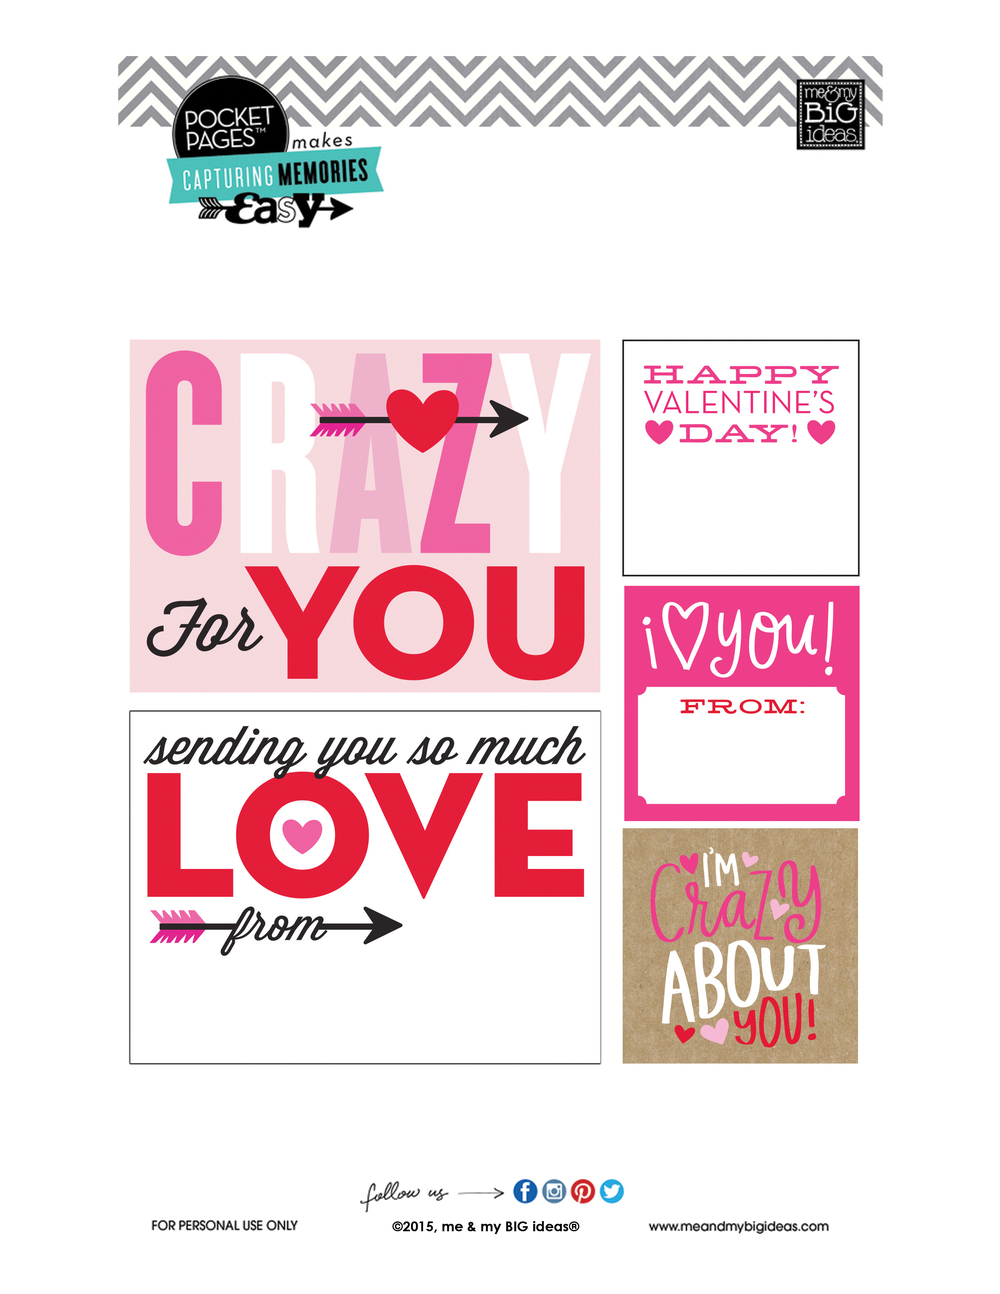 Valentine's POCKET PAGES™ Free Printable 01 | me & my BIG ideas